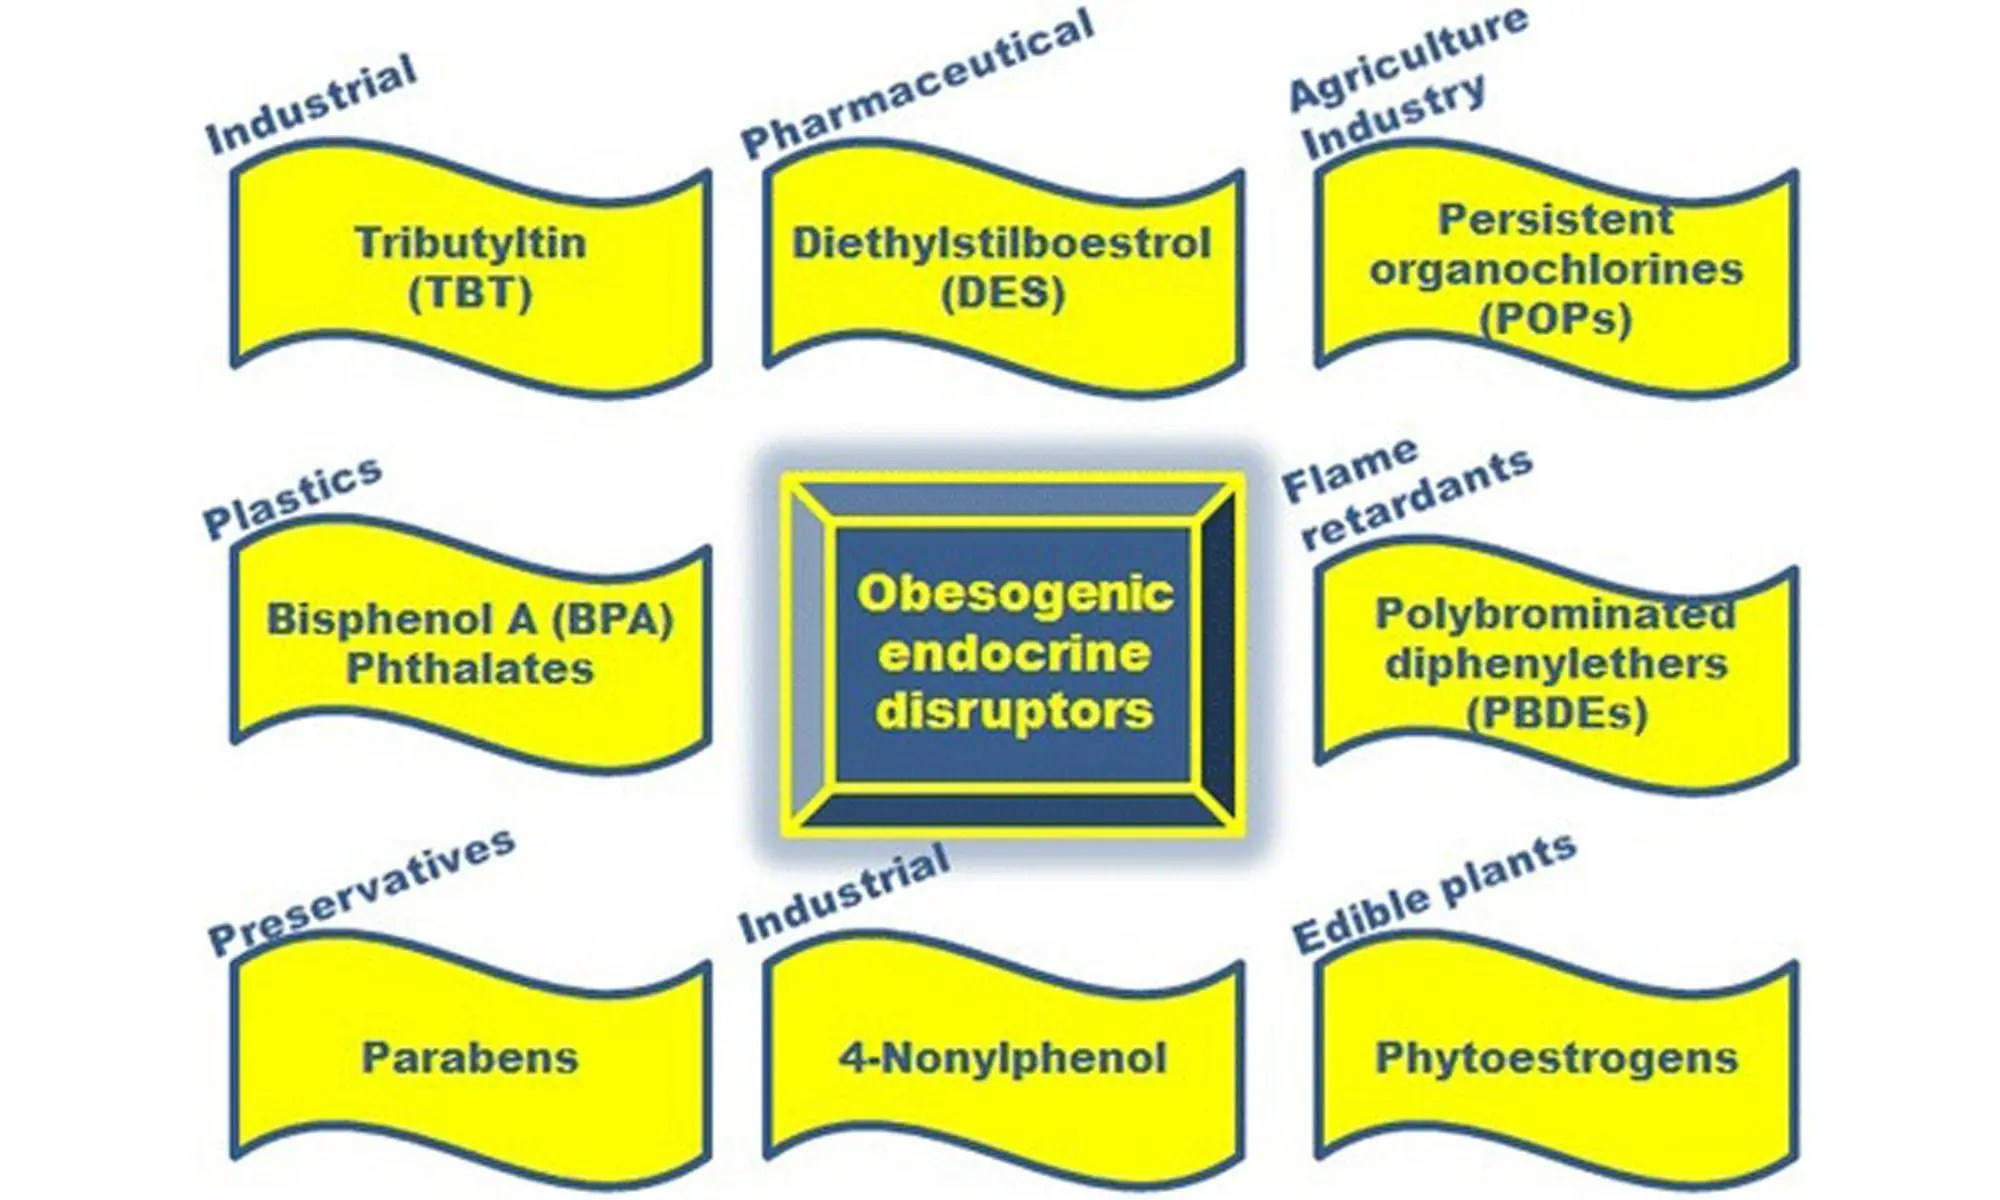 Endocrine Disruptors and Obesity